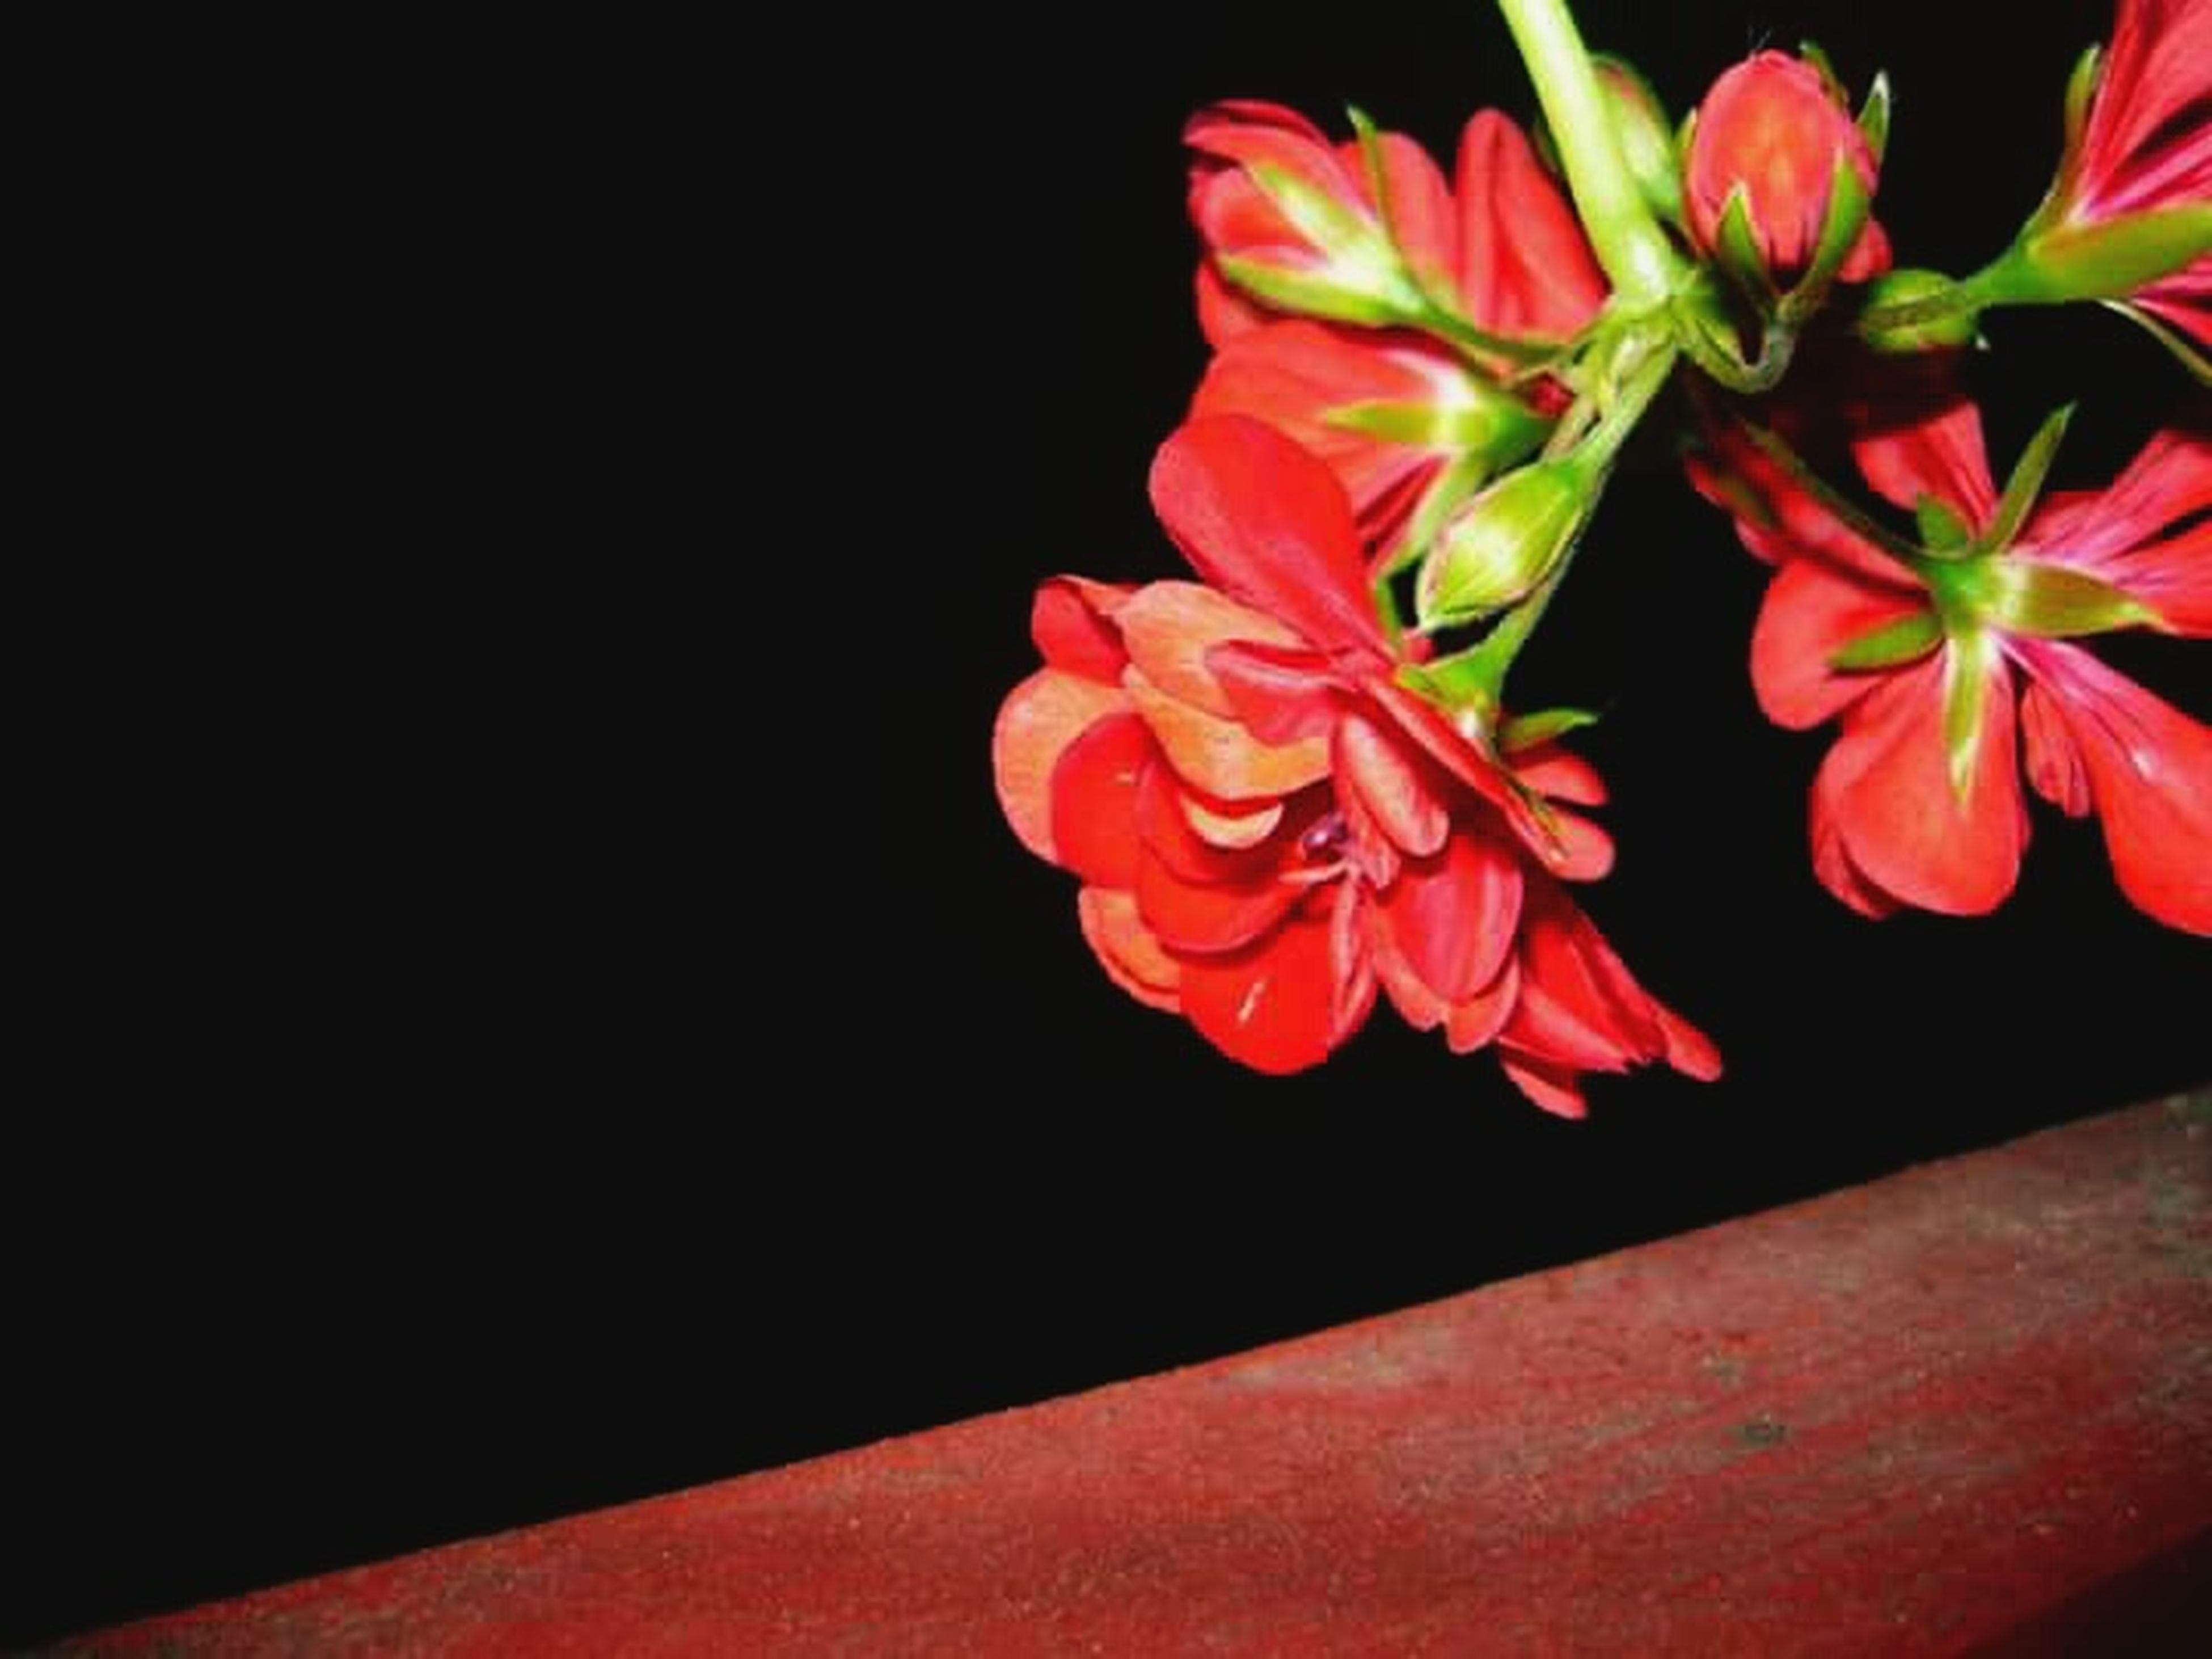 flower, black background, flower head, studio shot, nature, close-up, beauty in nature, freshness, blossom, fragility, multi colored, no people, pistil, outdoors, day